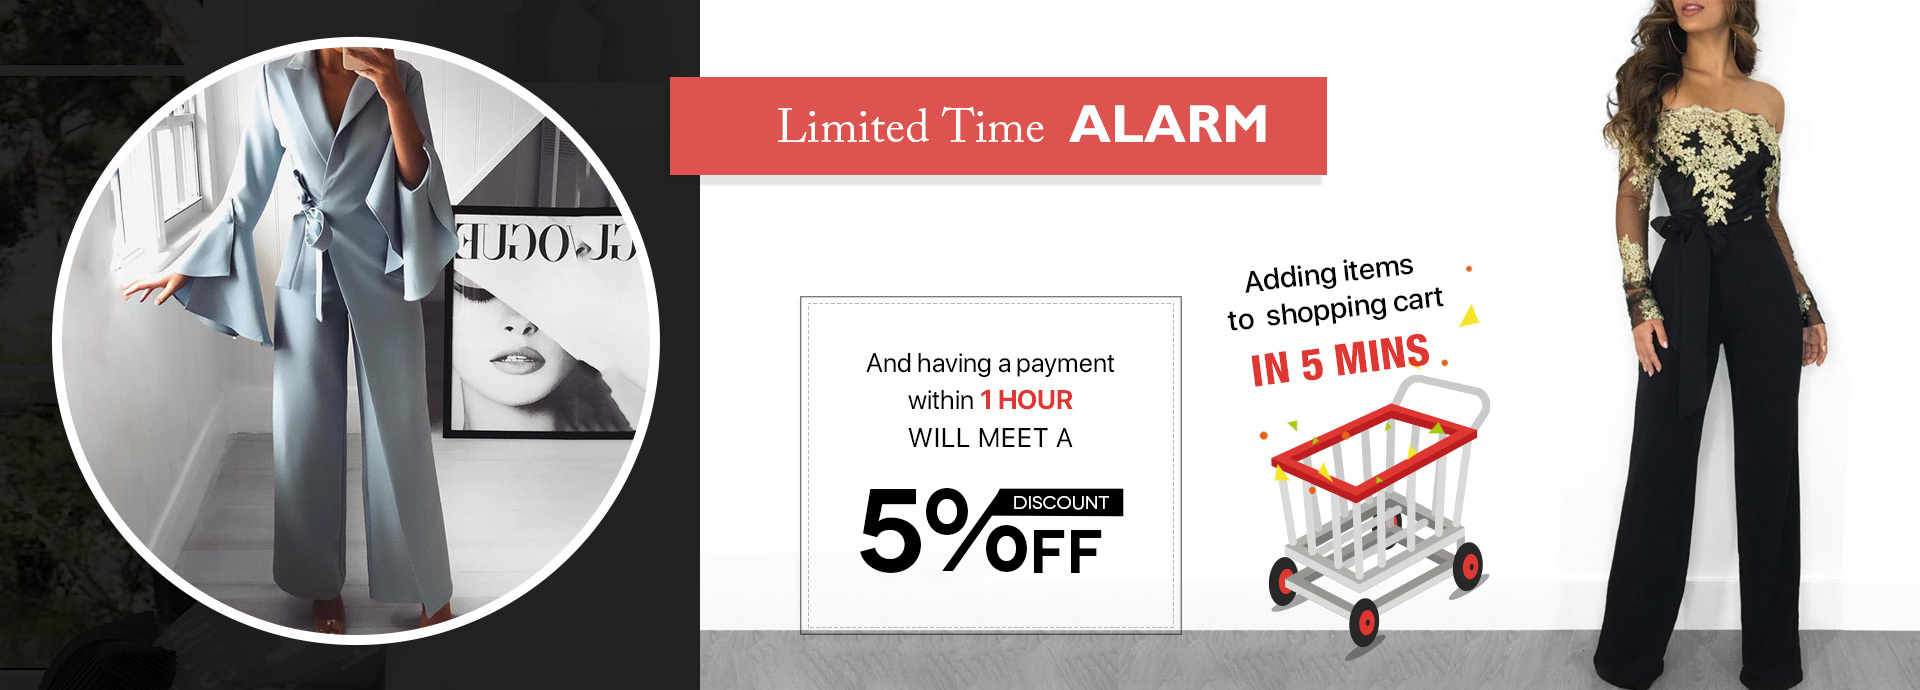 Limited Time Alarm